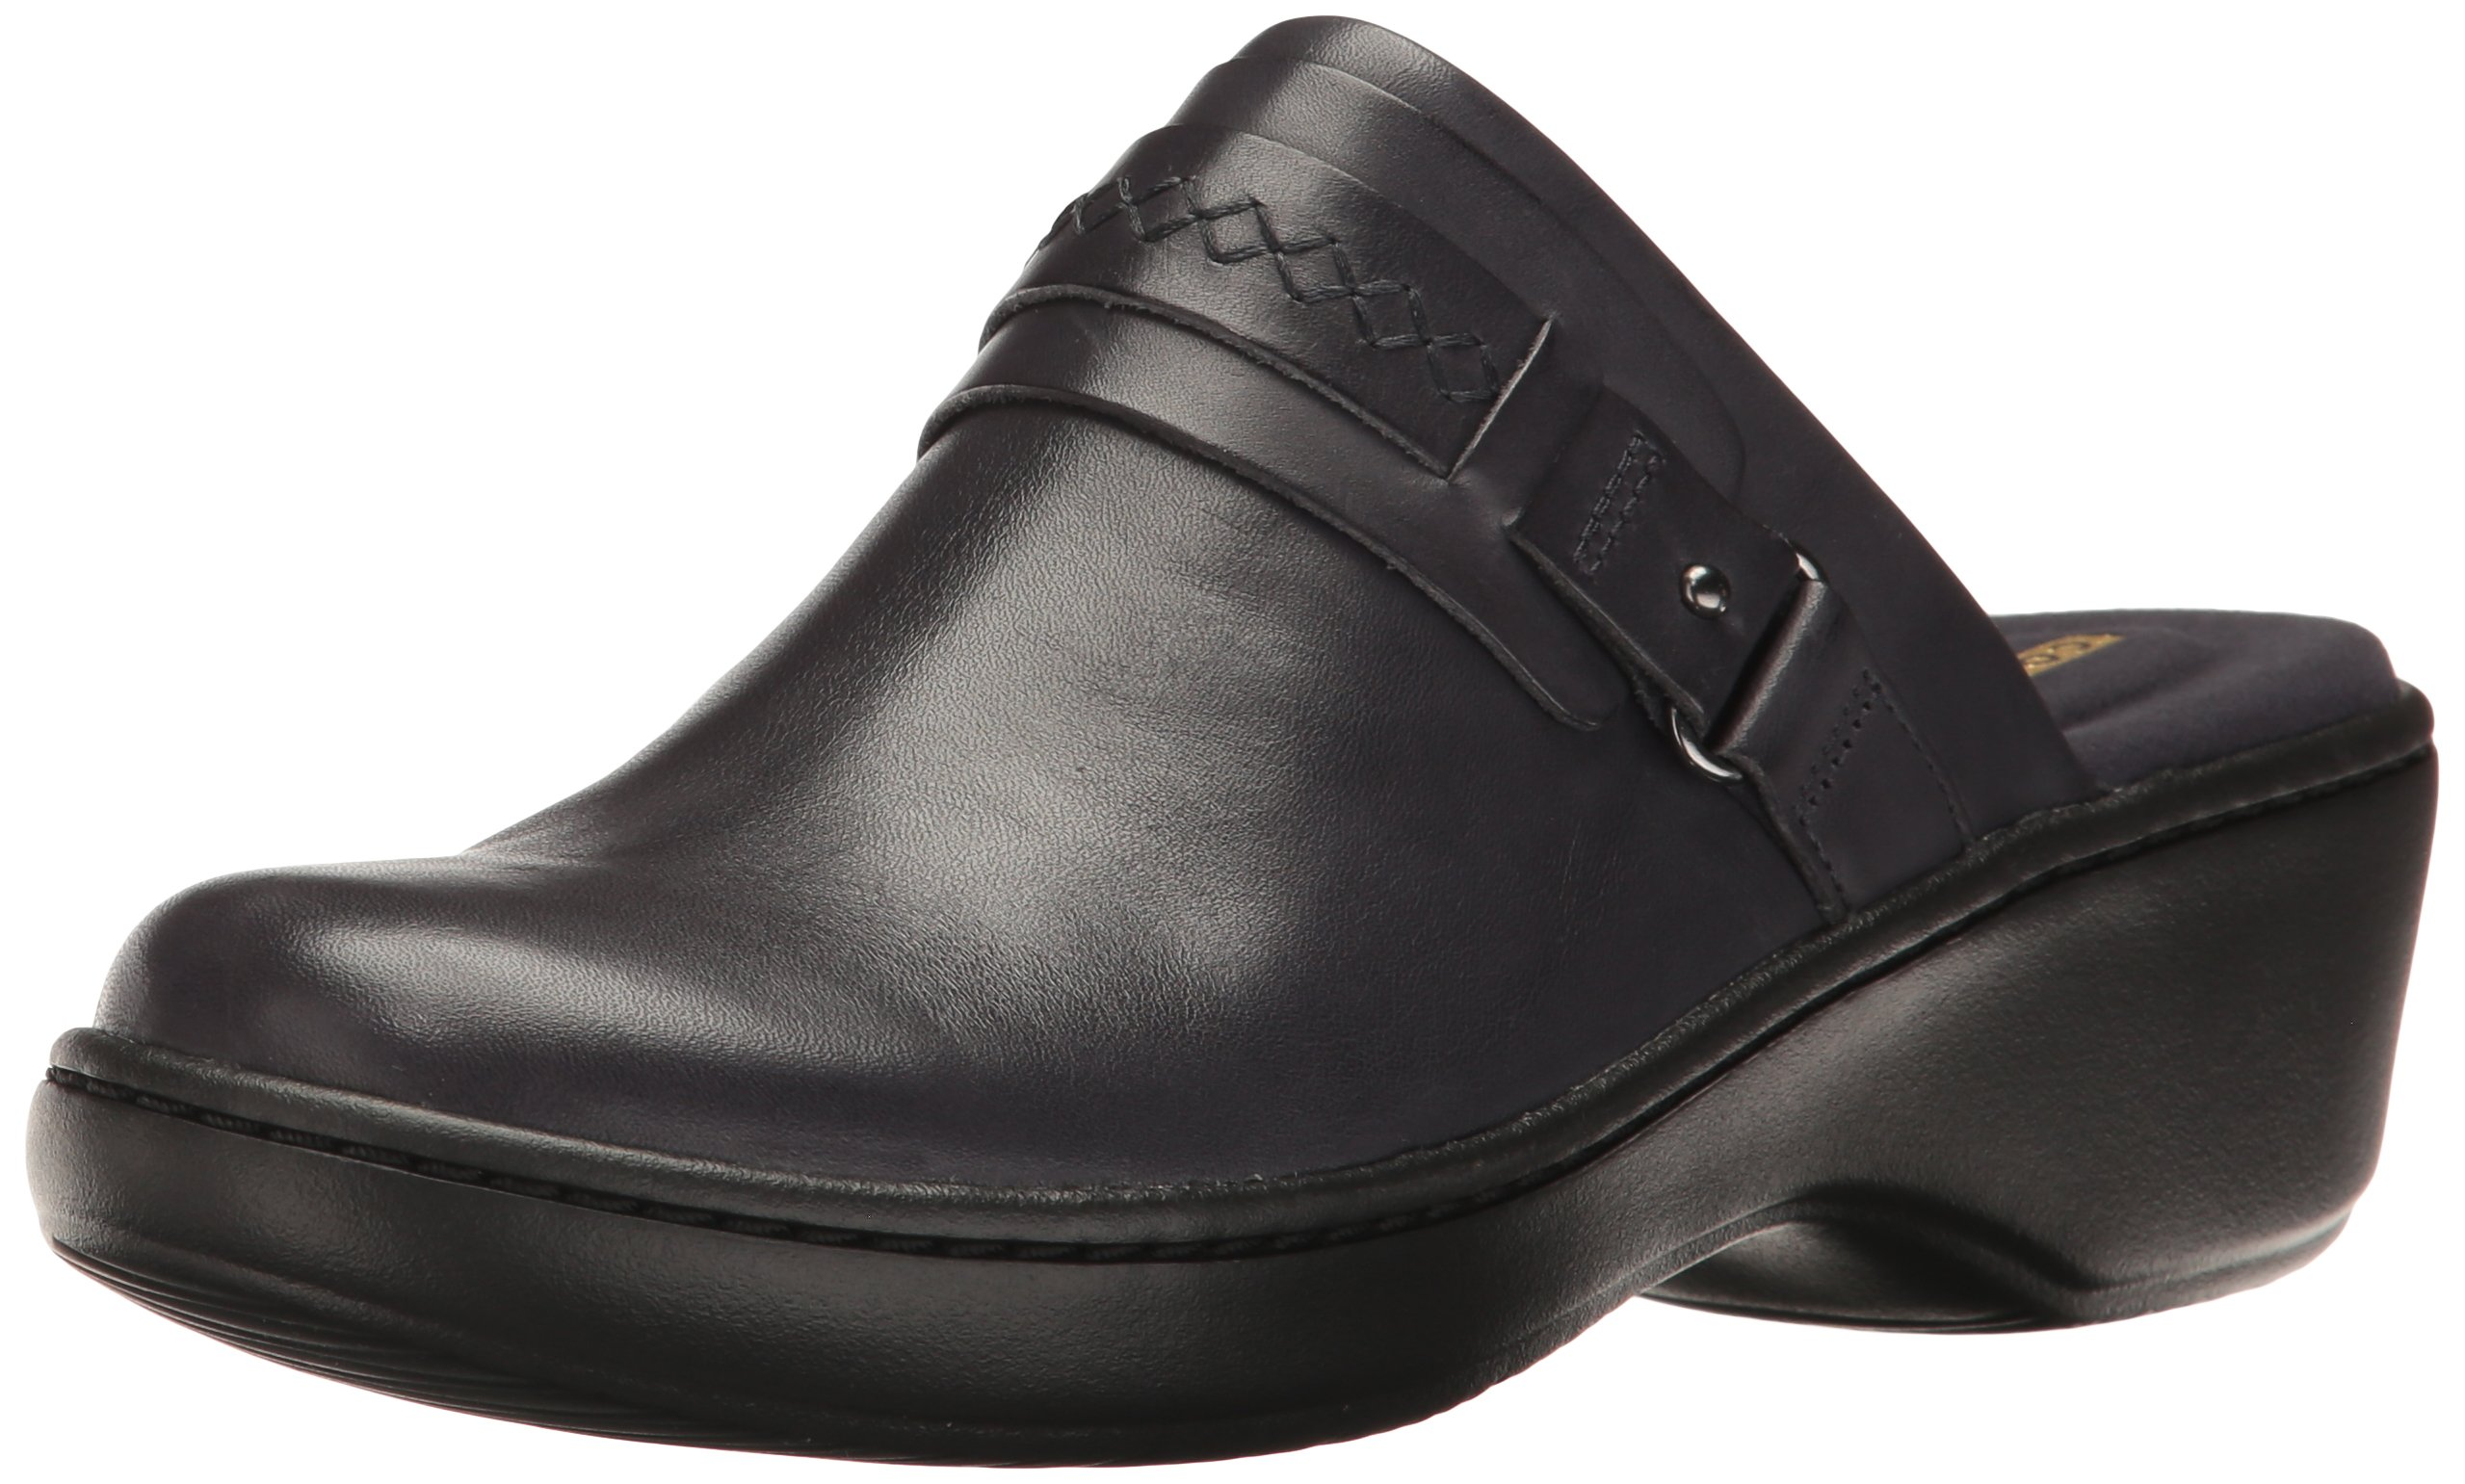 CLARKS Women's Delana Amber Mule, Navy Leather, 8 W US